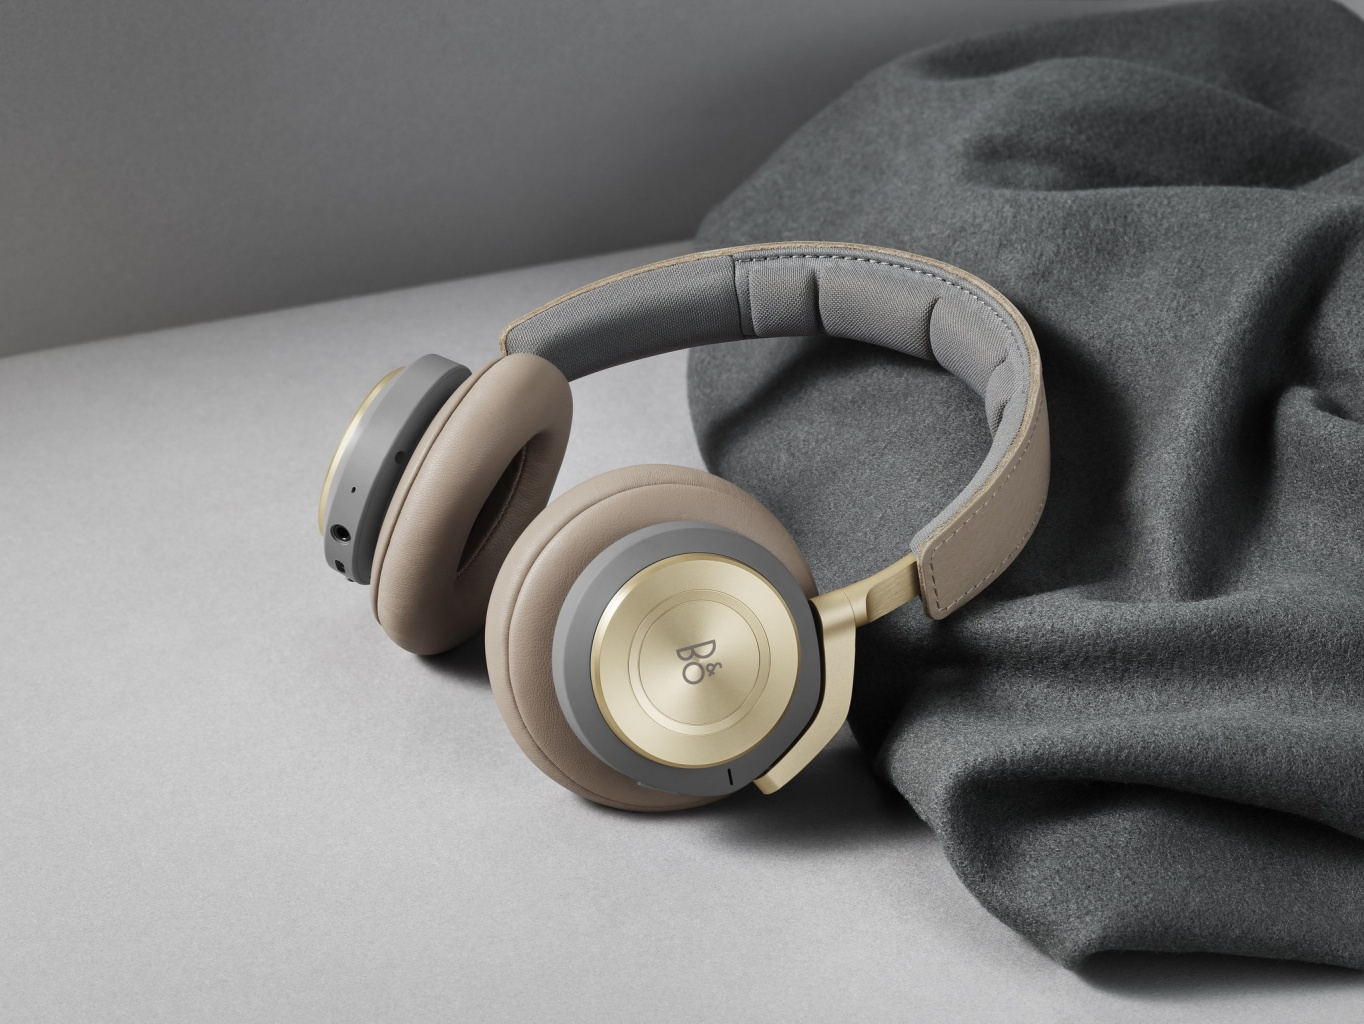 bang-and-olufsen-beoplay-h9-02.jpg